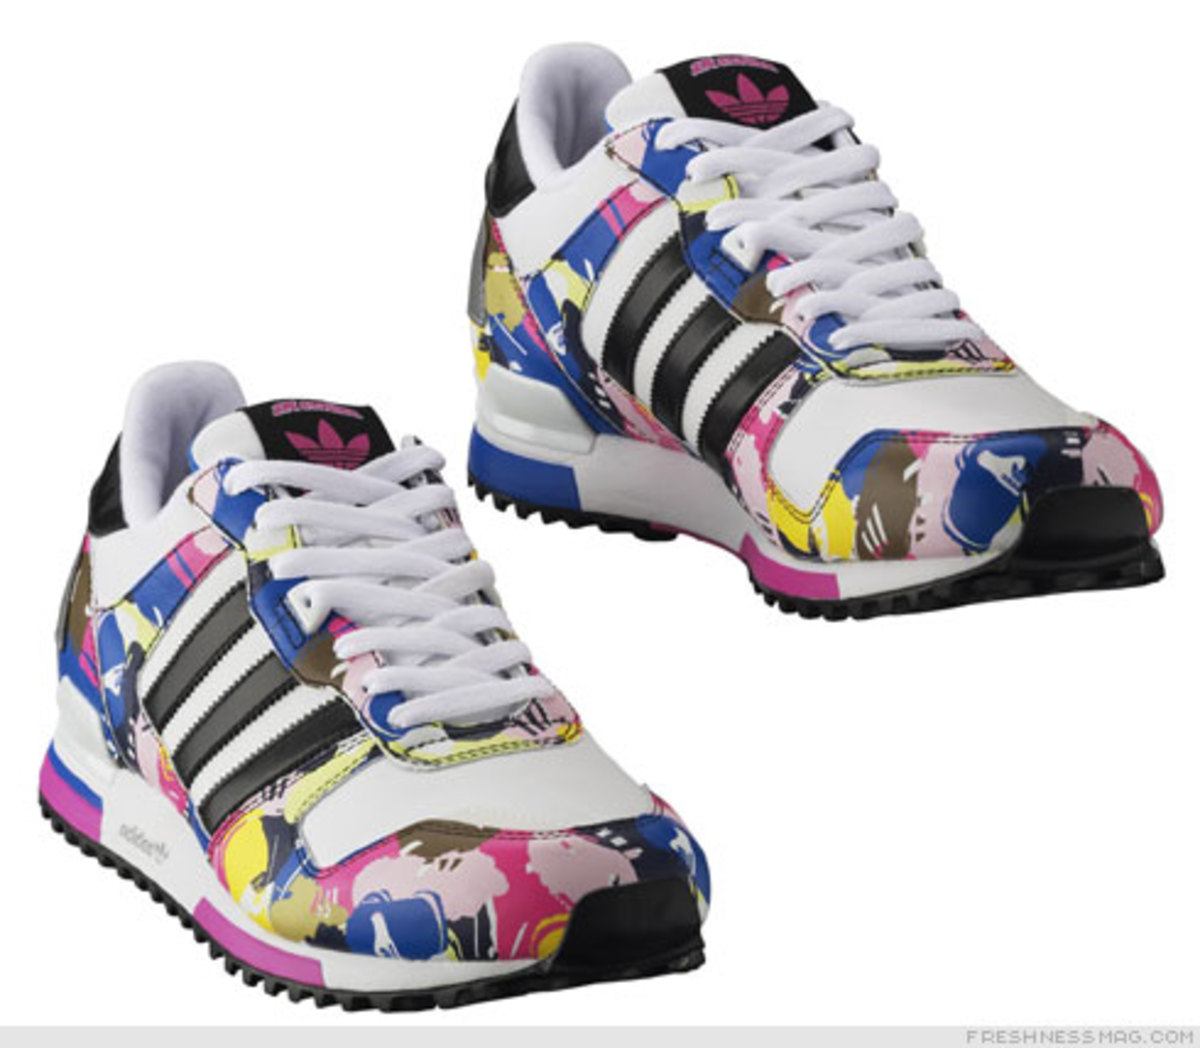 Freshness Feature: Adidas ZX Family - Camo Pack - 3